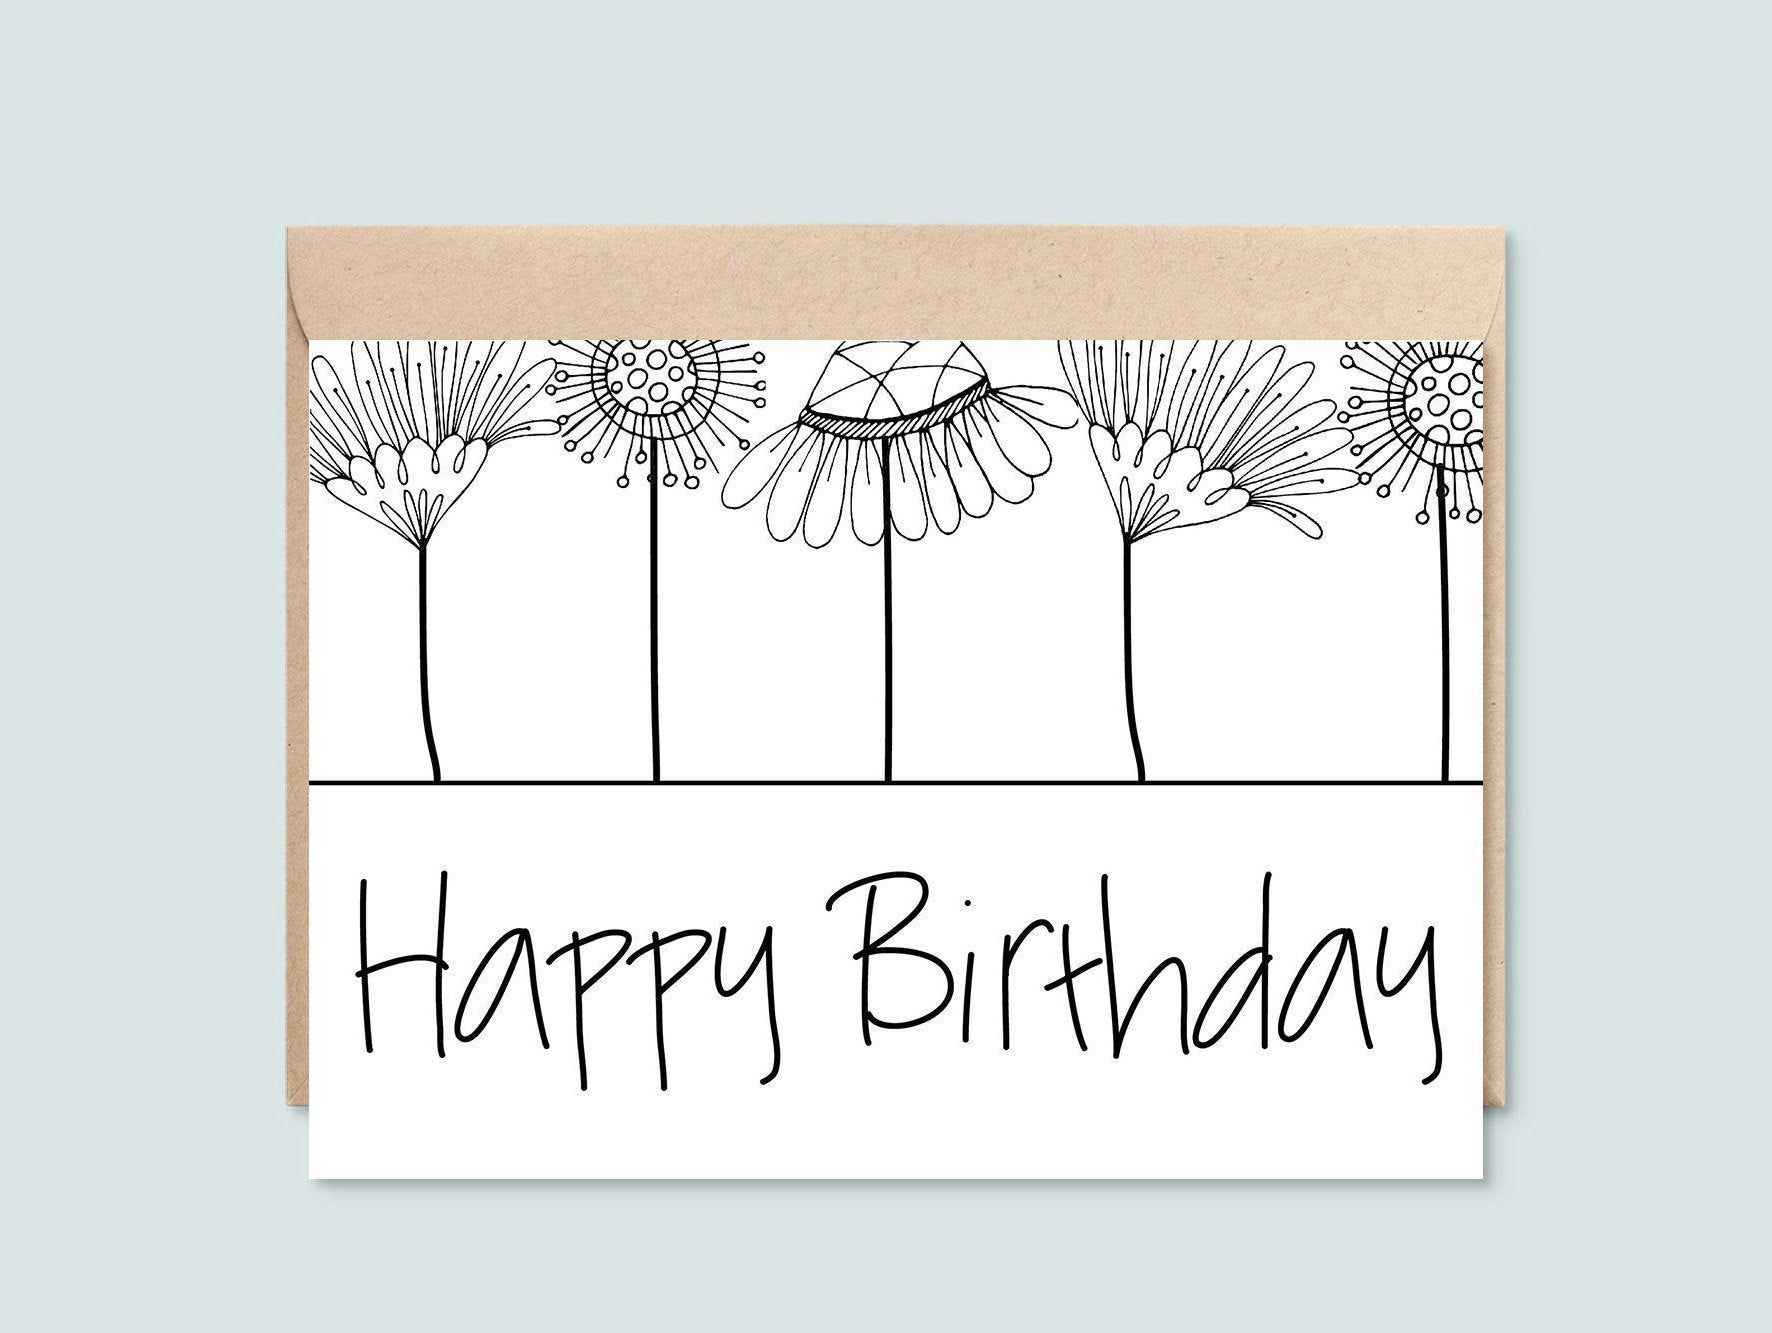 Birthday Card For Her Printable Happy Birthday Black And White Floral Instant Download 5x7 Greeting Card Mother Sister Wife Grandma Birthday Cards For Her Birthday Cards Happy Birthday Black